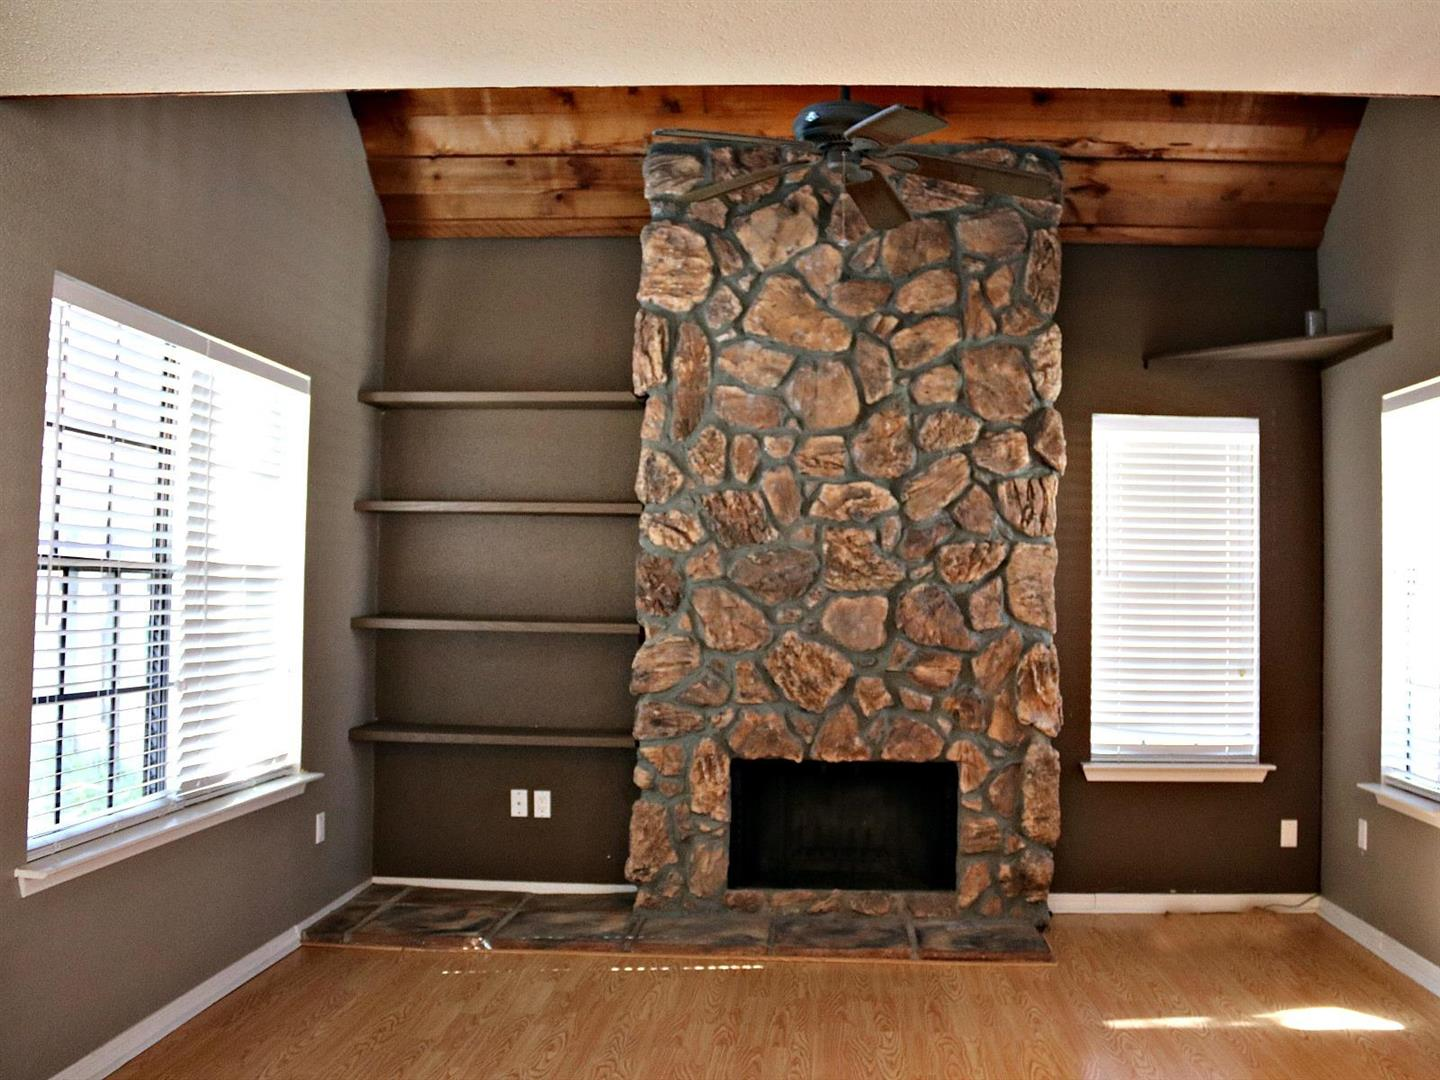 BourdeauxVillageTownhomefireplace.jpg